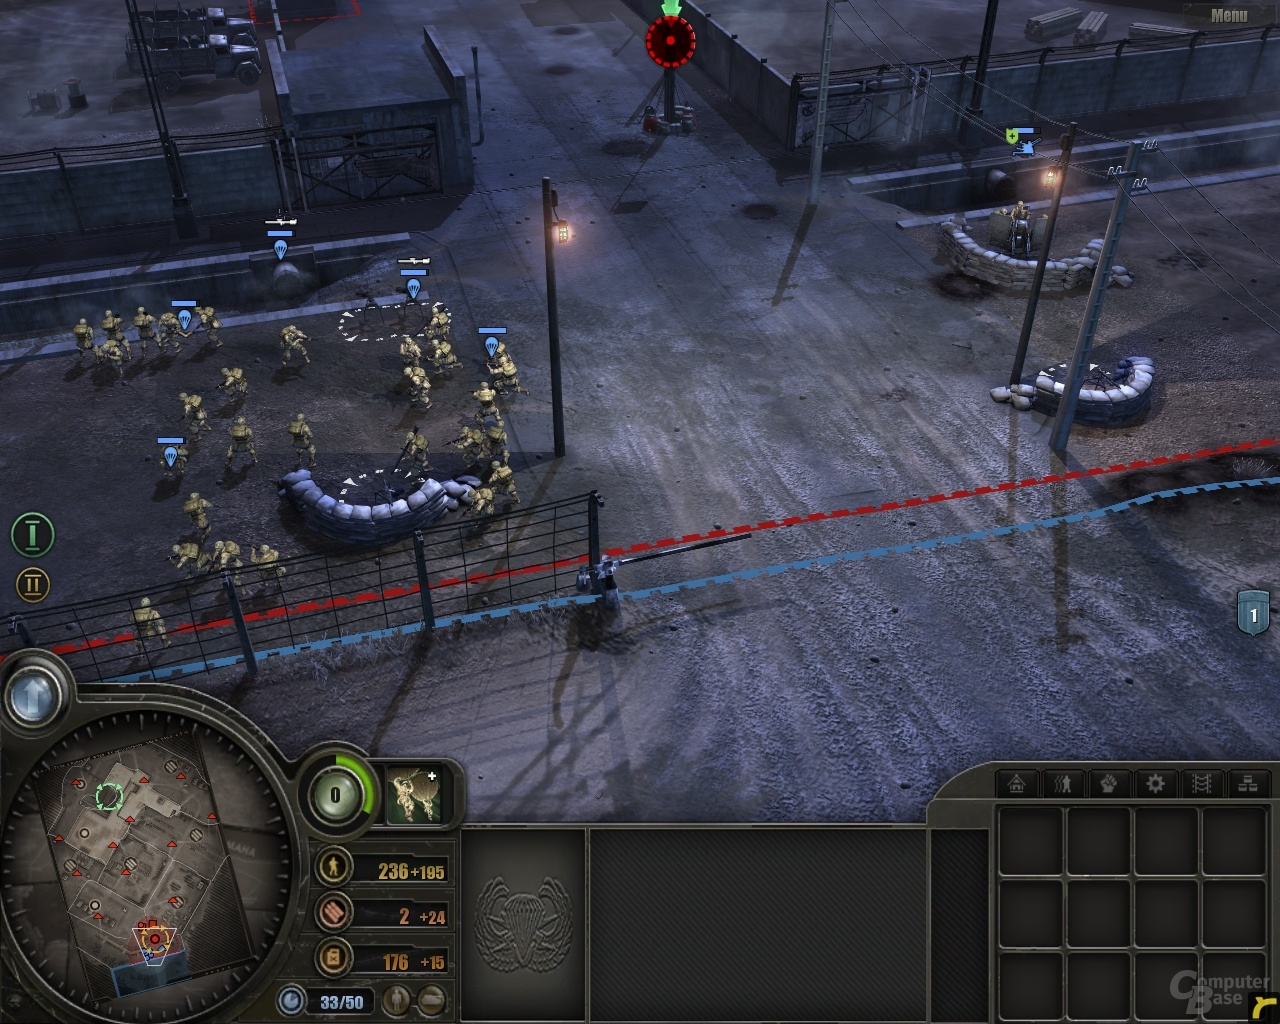 Company of Heroes D3D10 - R600